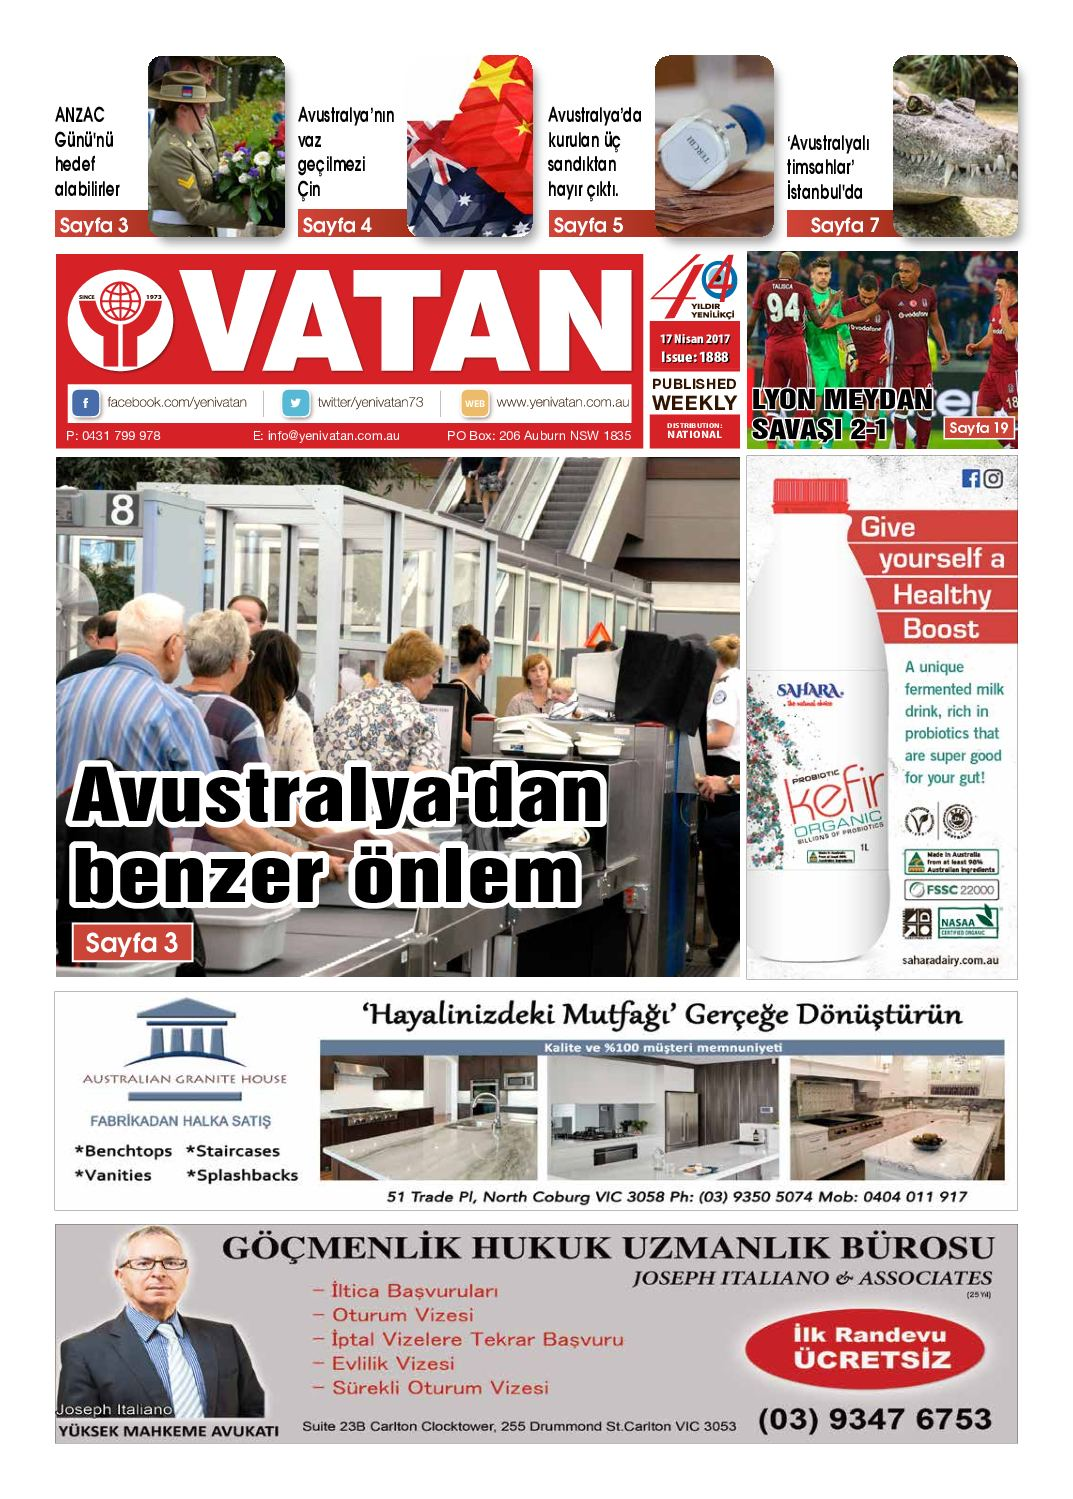 Calameo Yeni Vatan Turkish Newspaper Issue No 1888